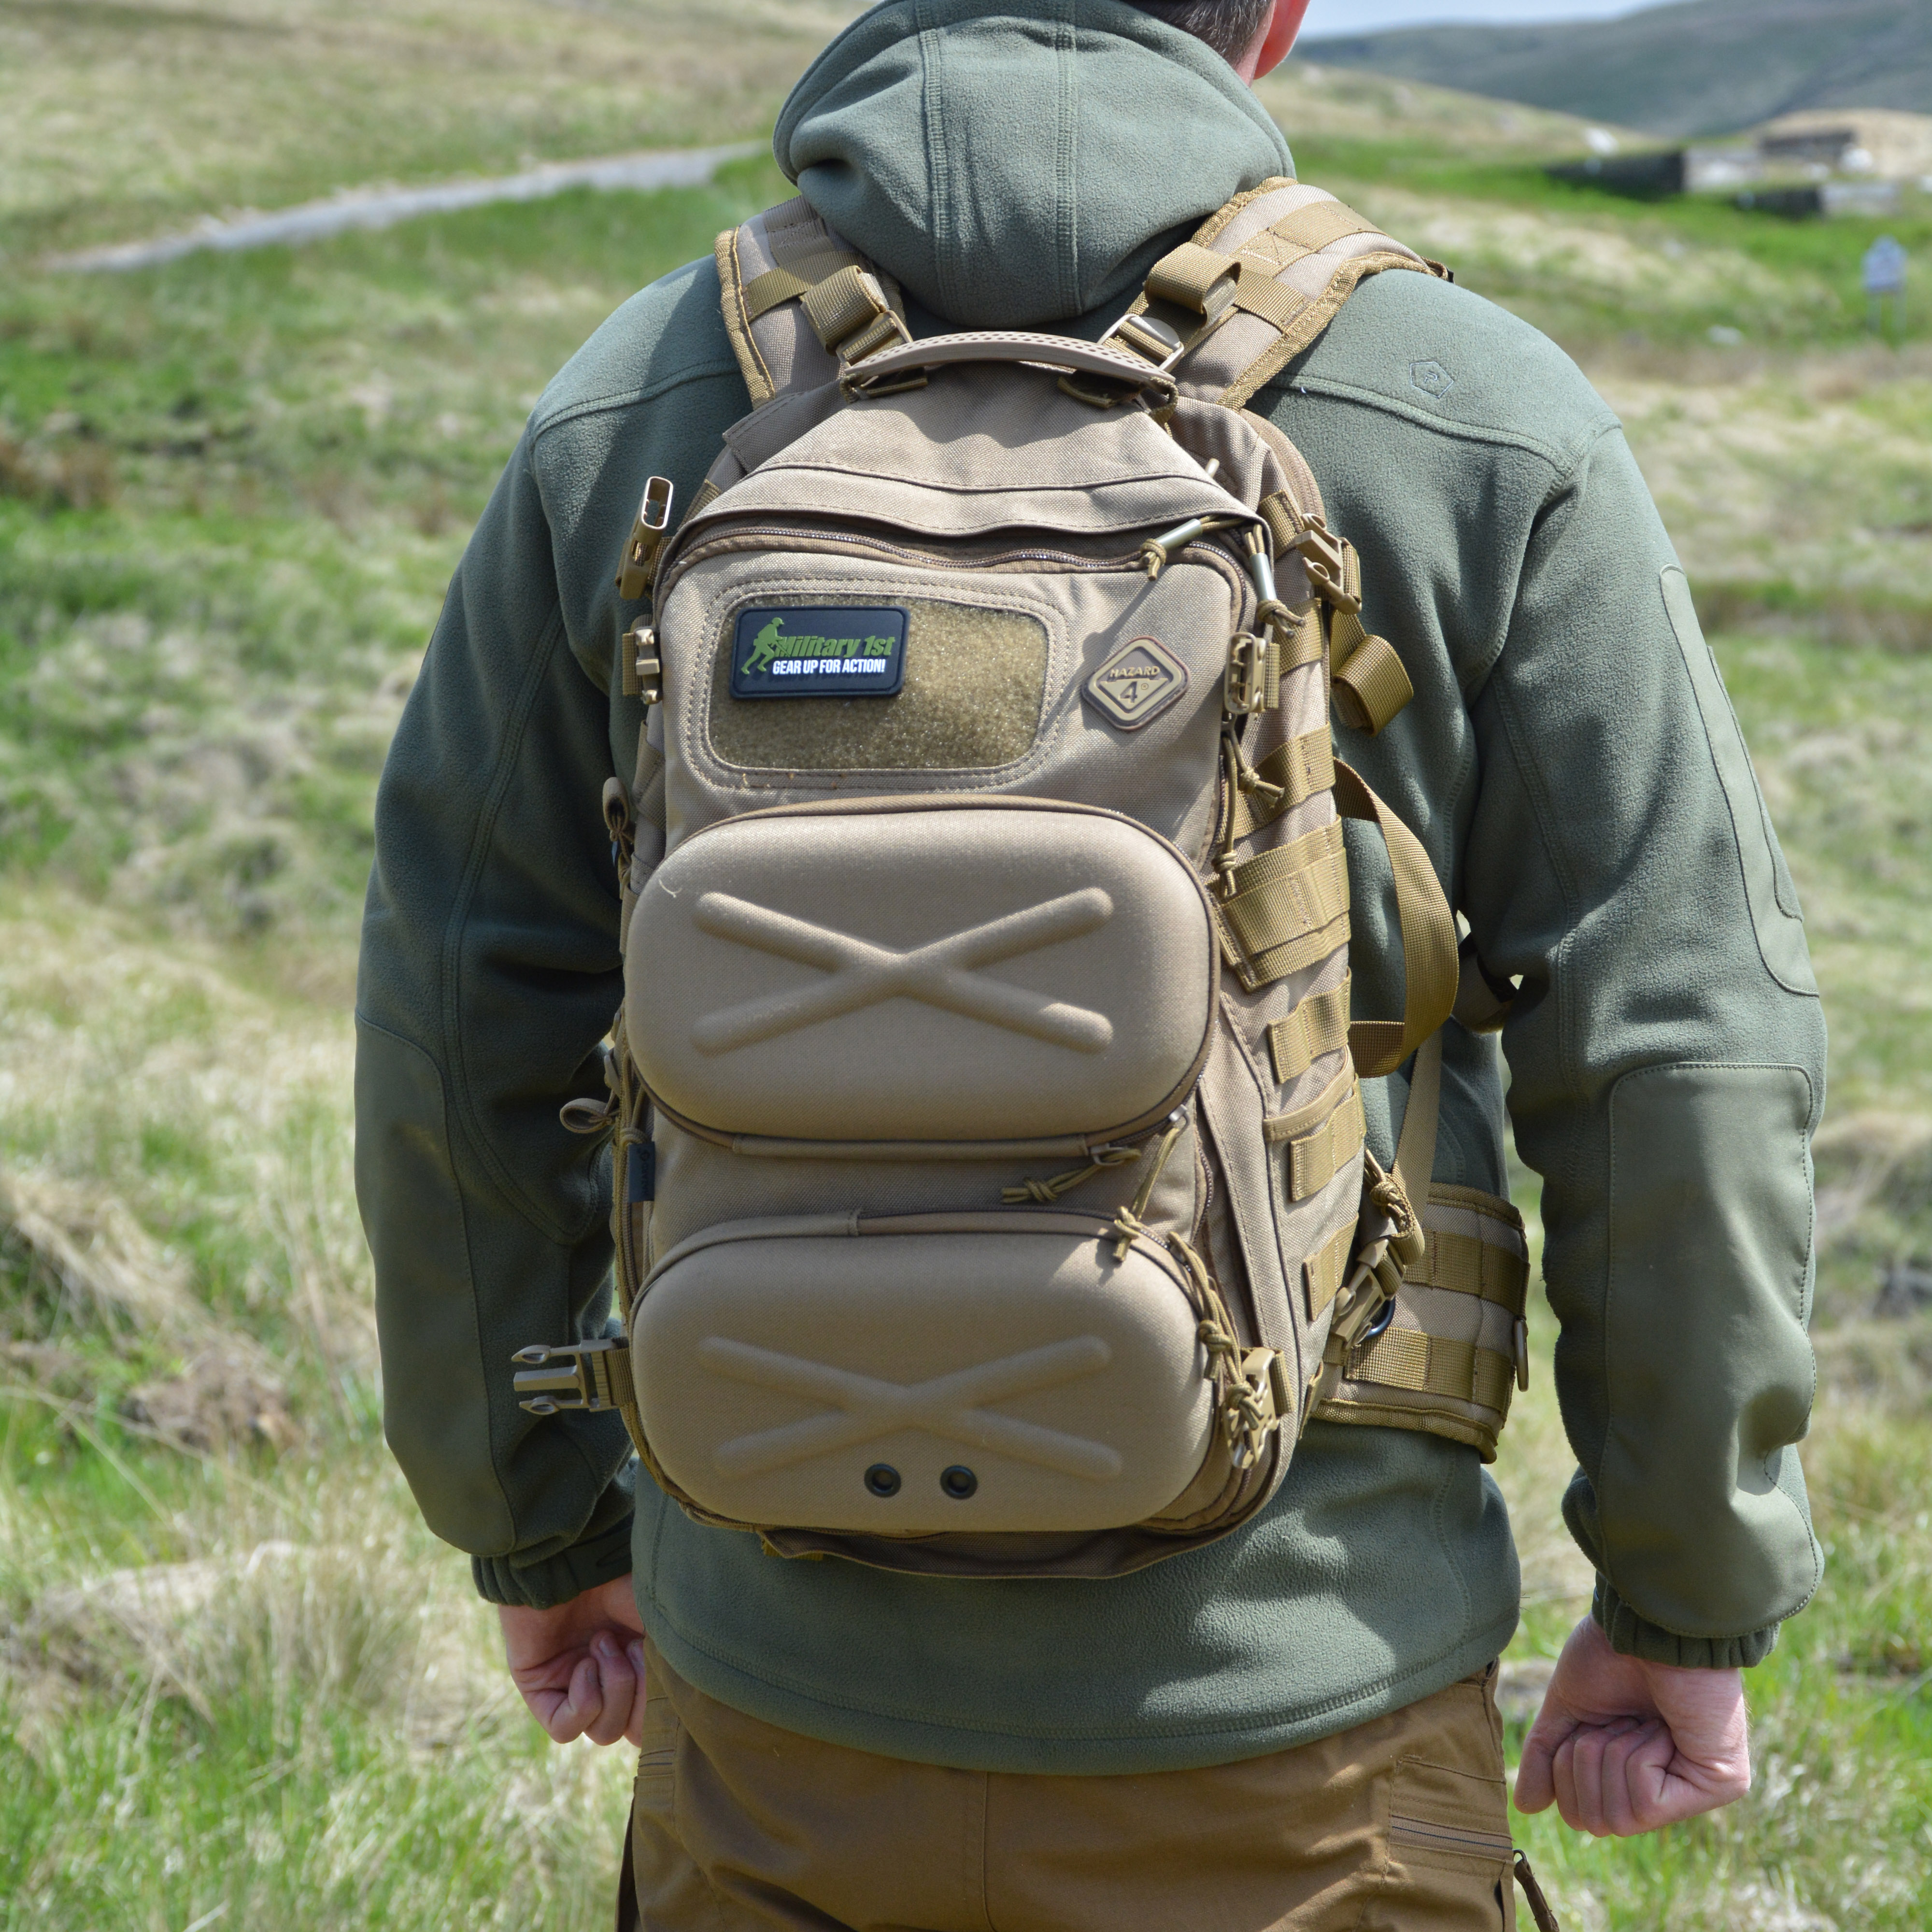 Hazard 4 Clerk Backpack